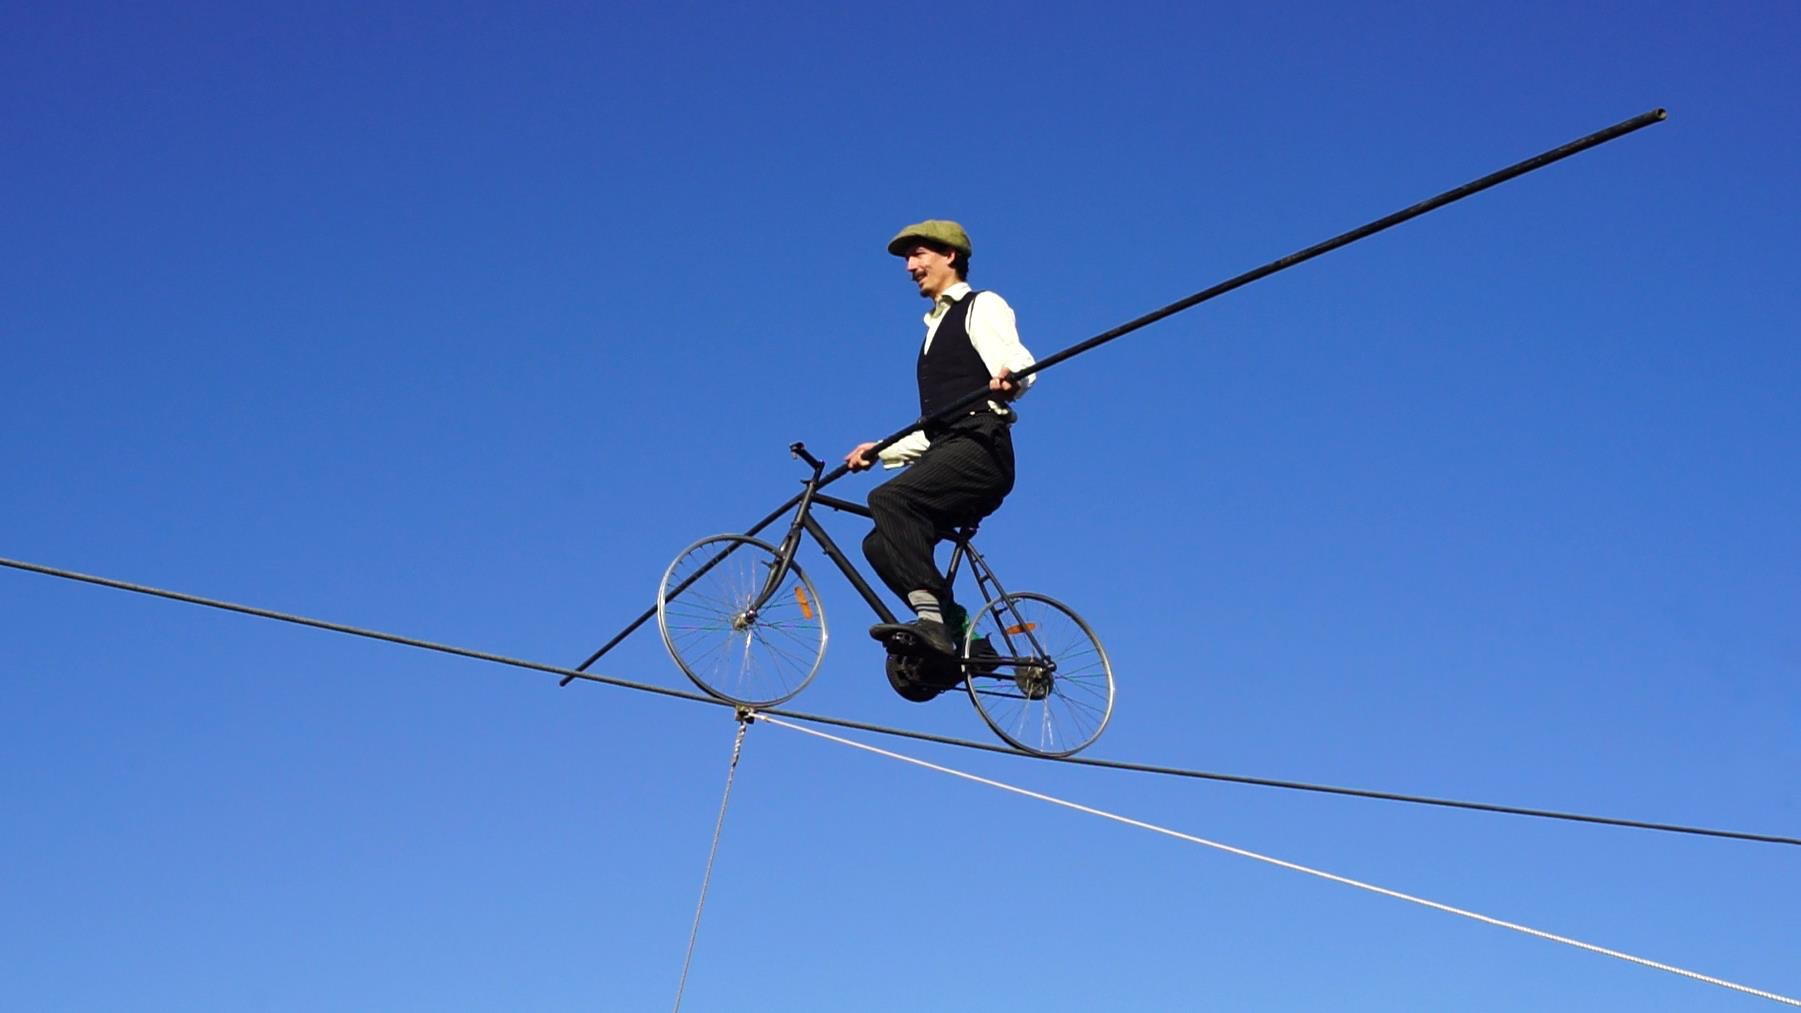 bike on wire.jpg